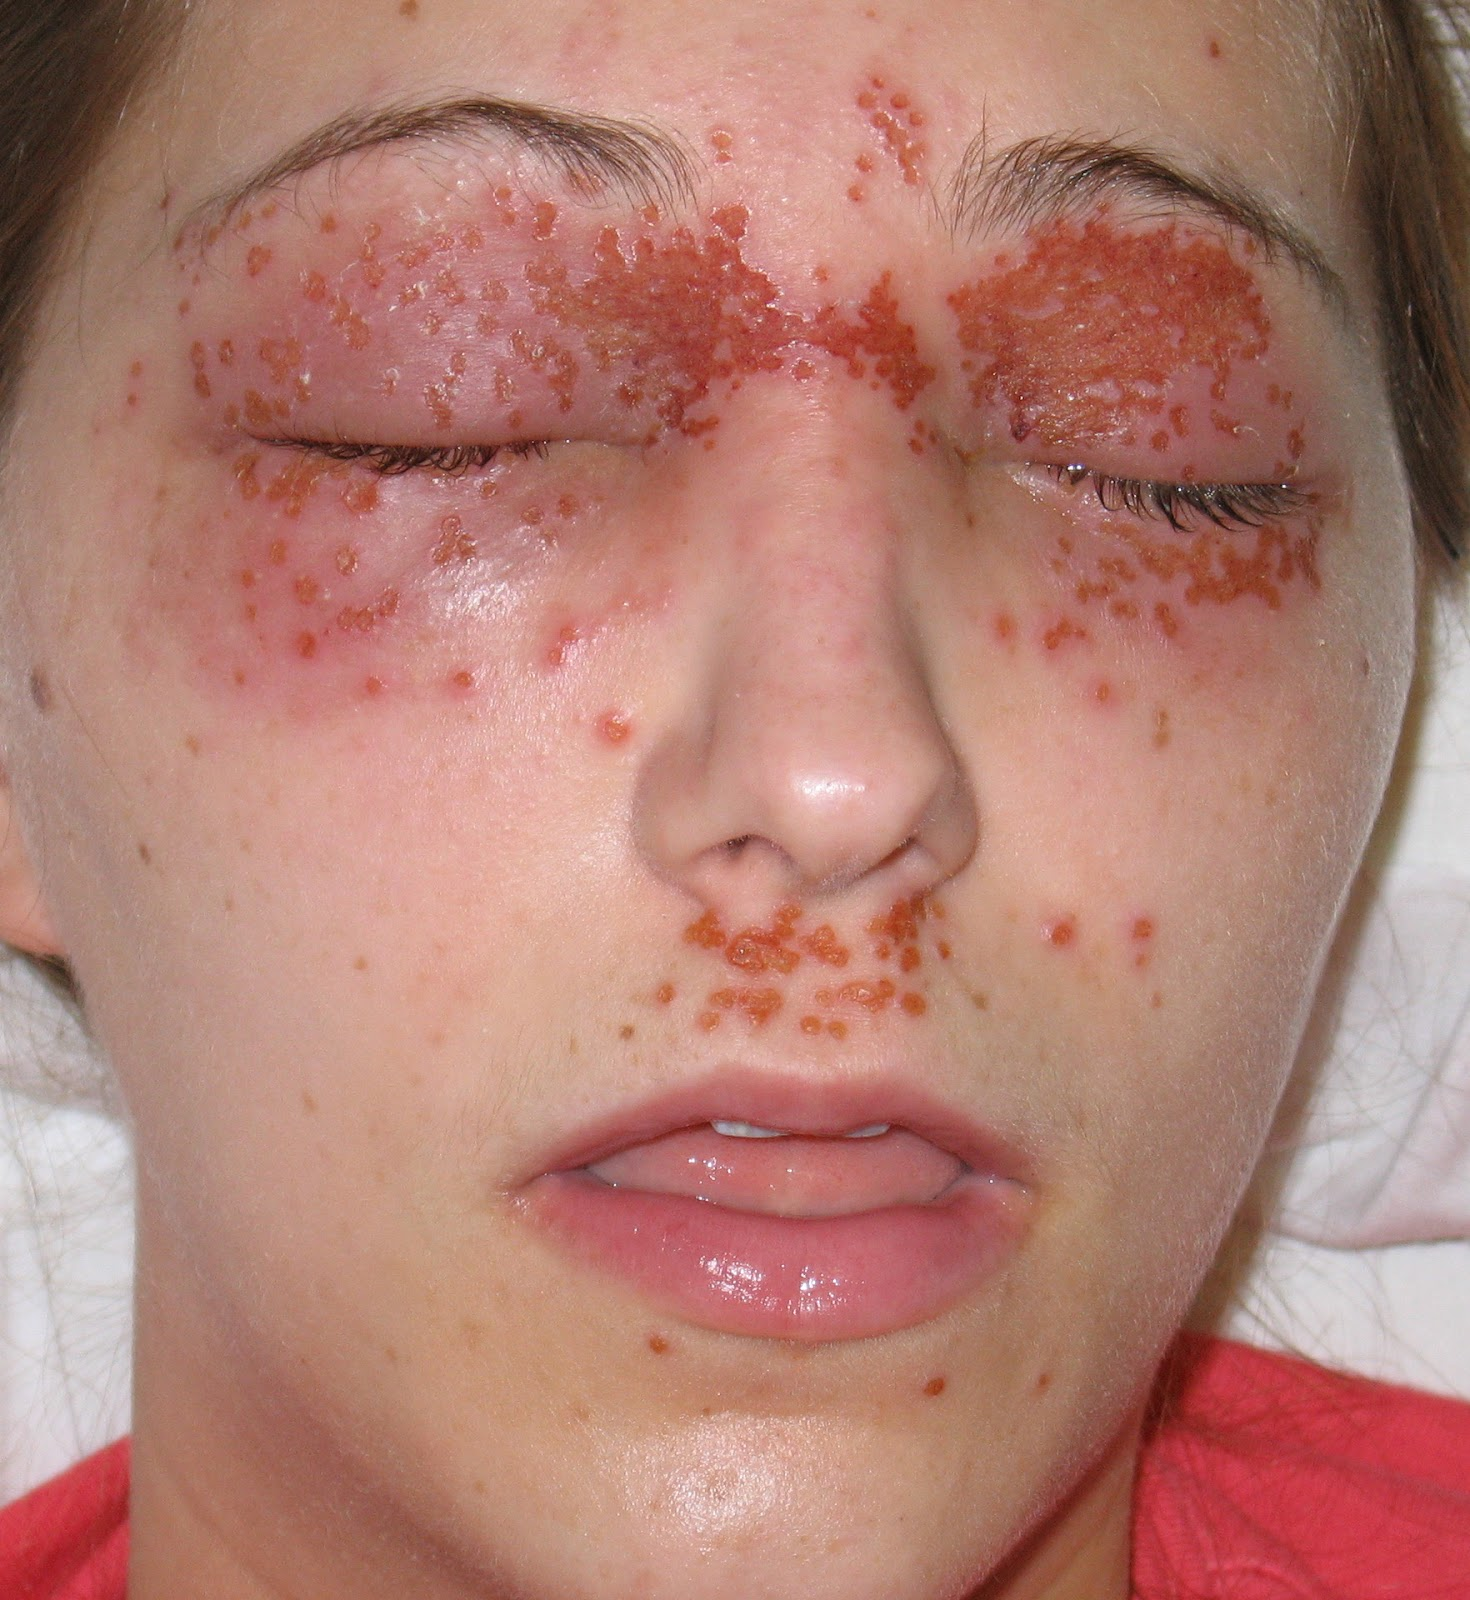 Symptoms of herpes simplex 1 infection lobby